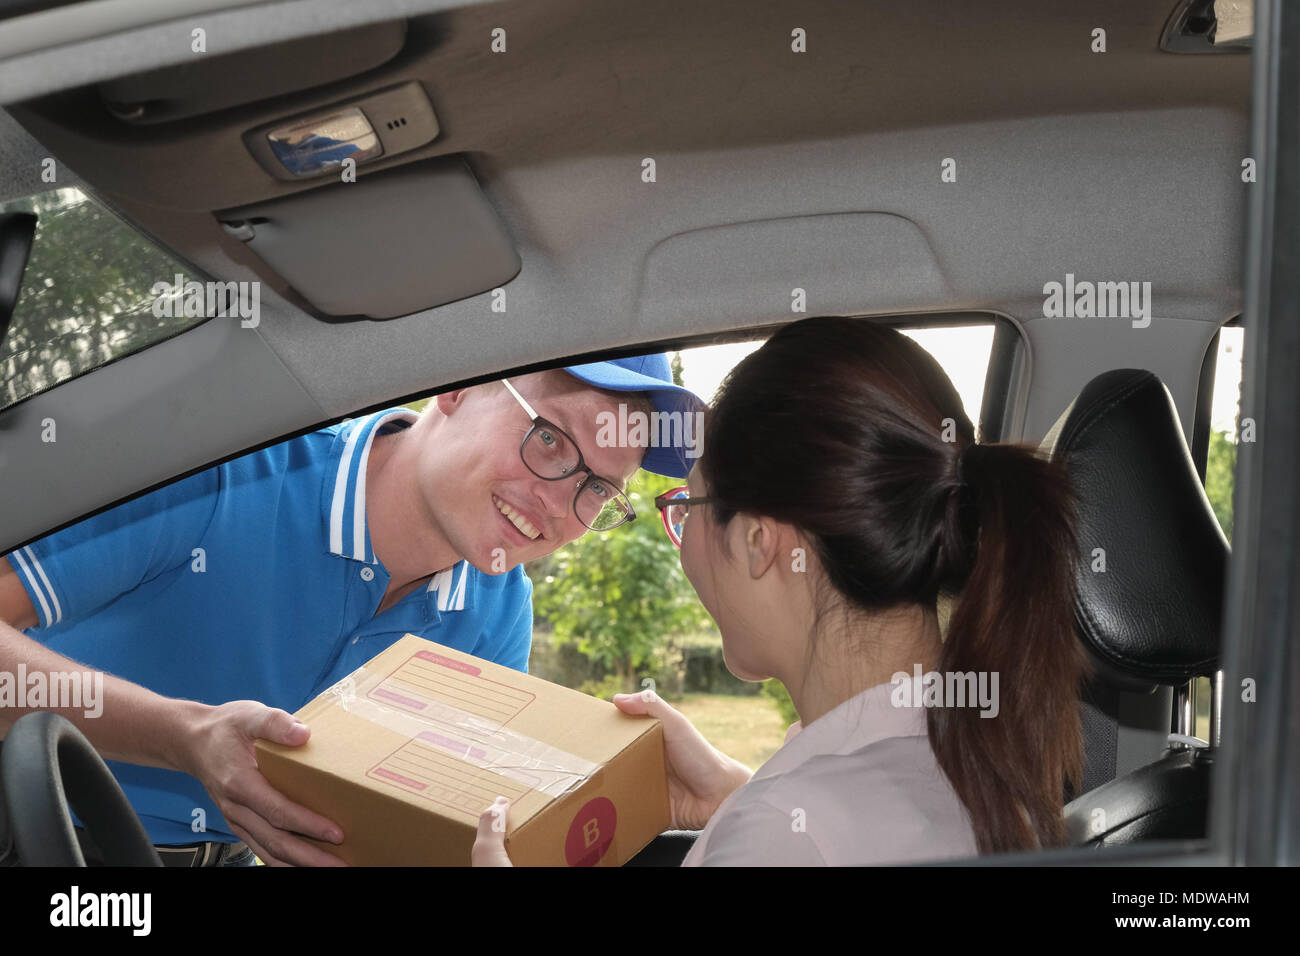 woman receive package from delivery man. male postal courier person deliver cardboard box to female adult on car - Stock Image